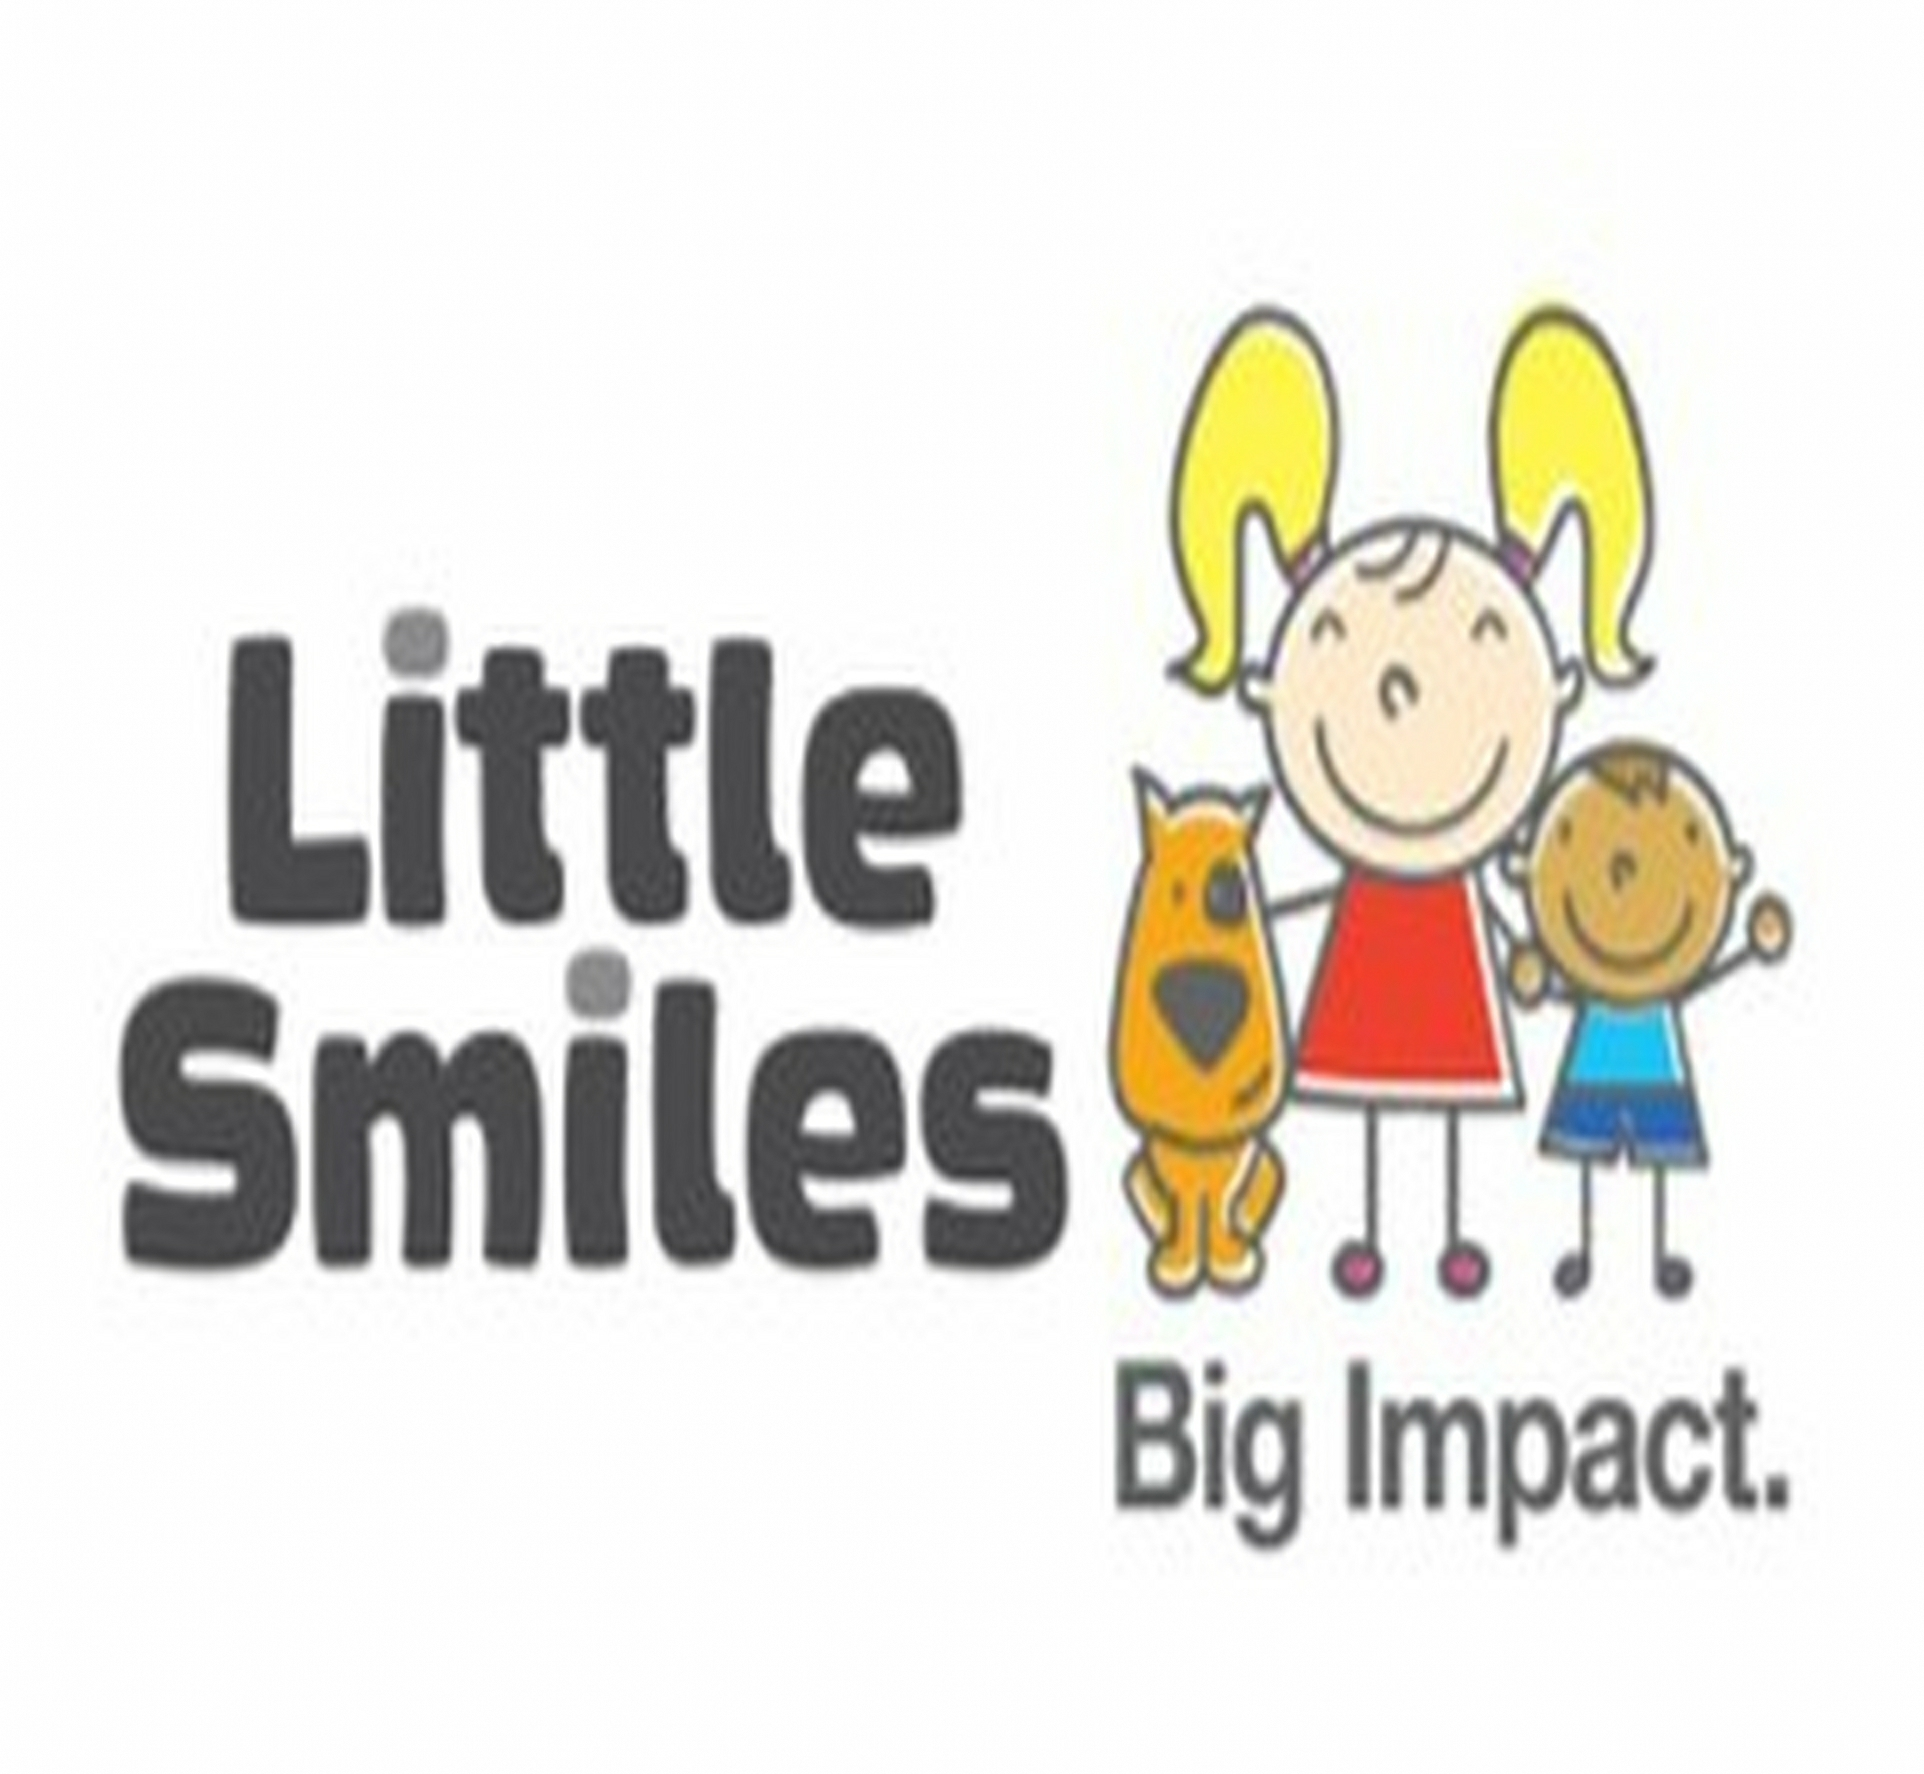 cc little smiles logo square jpeg.jpg